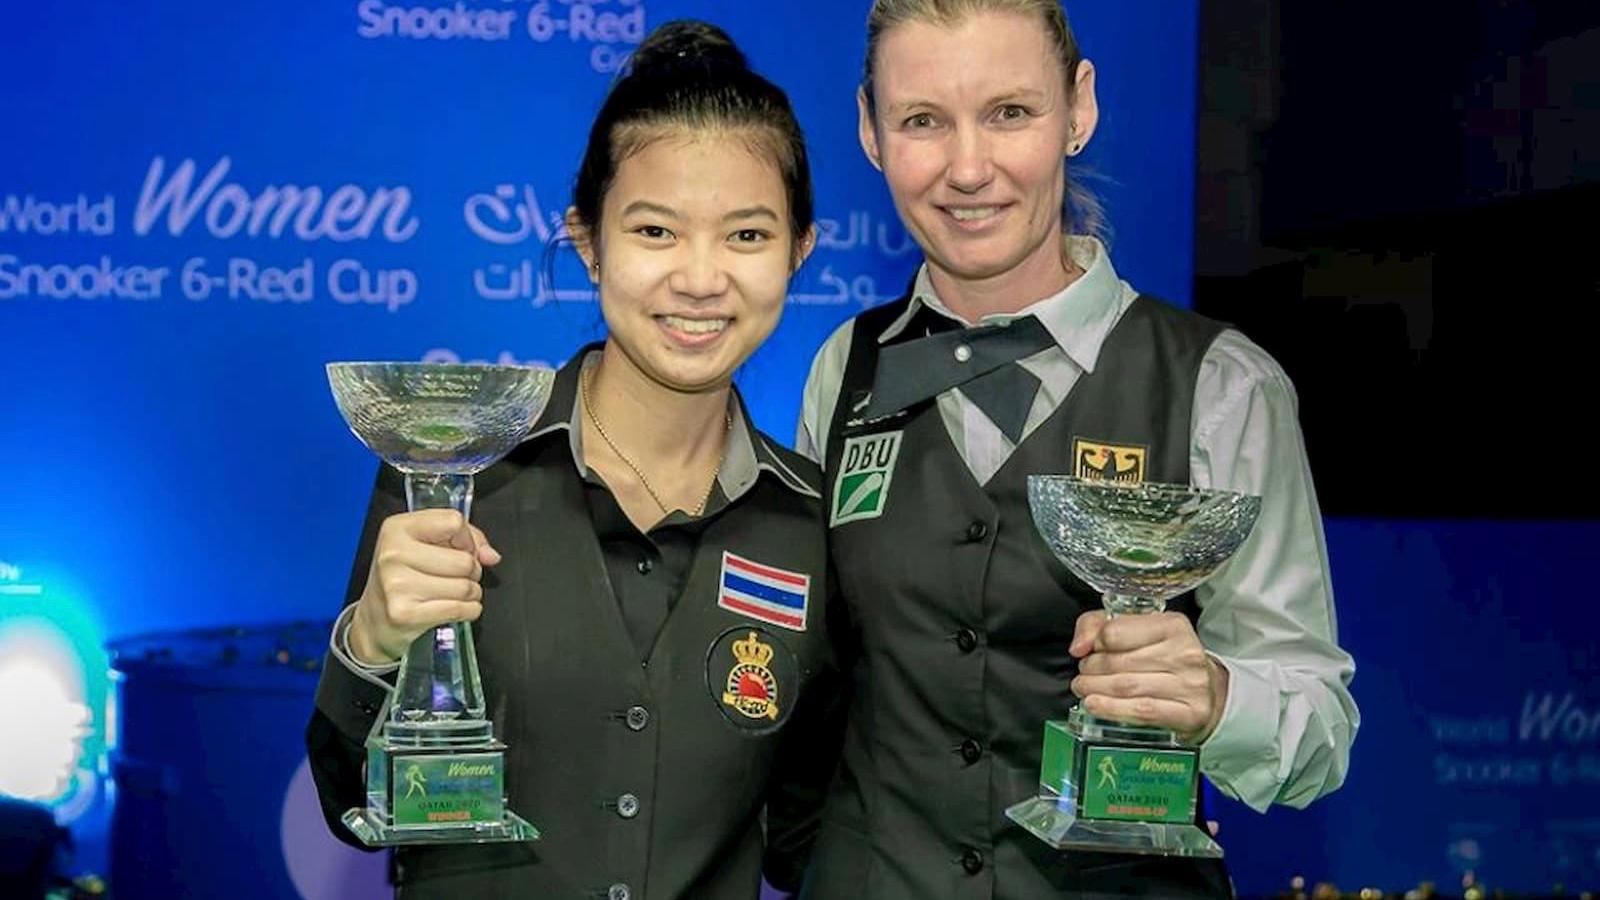 Thailand's Wongharuthai claims maiden World Women Snooker 6-Red Cup crown in Doha